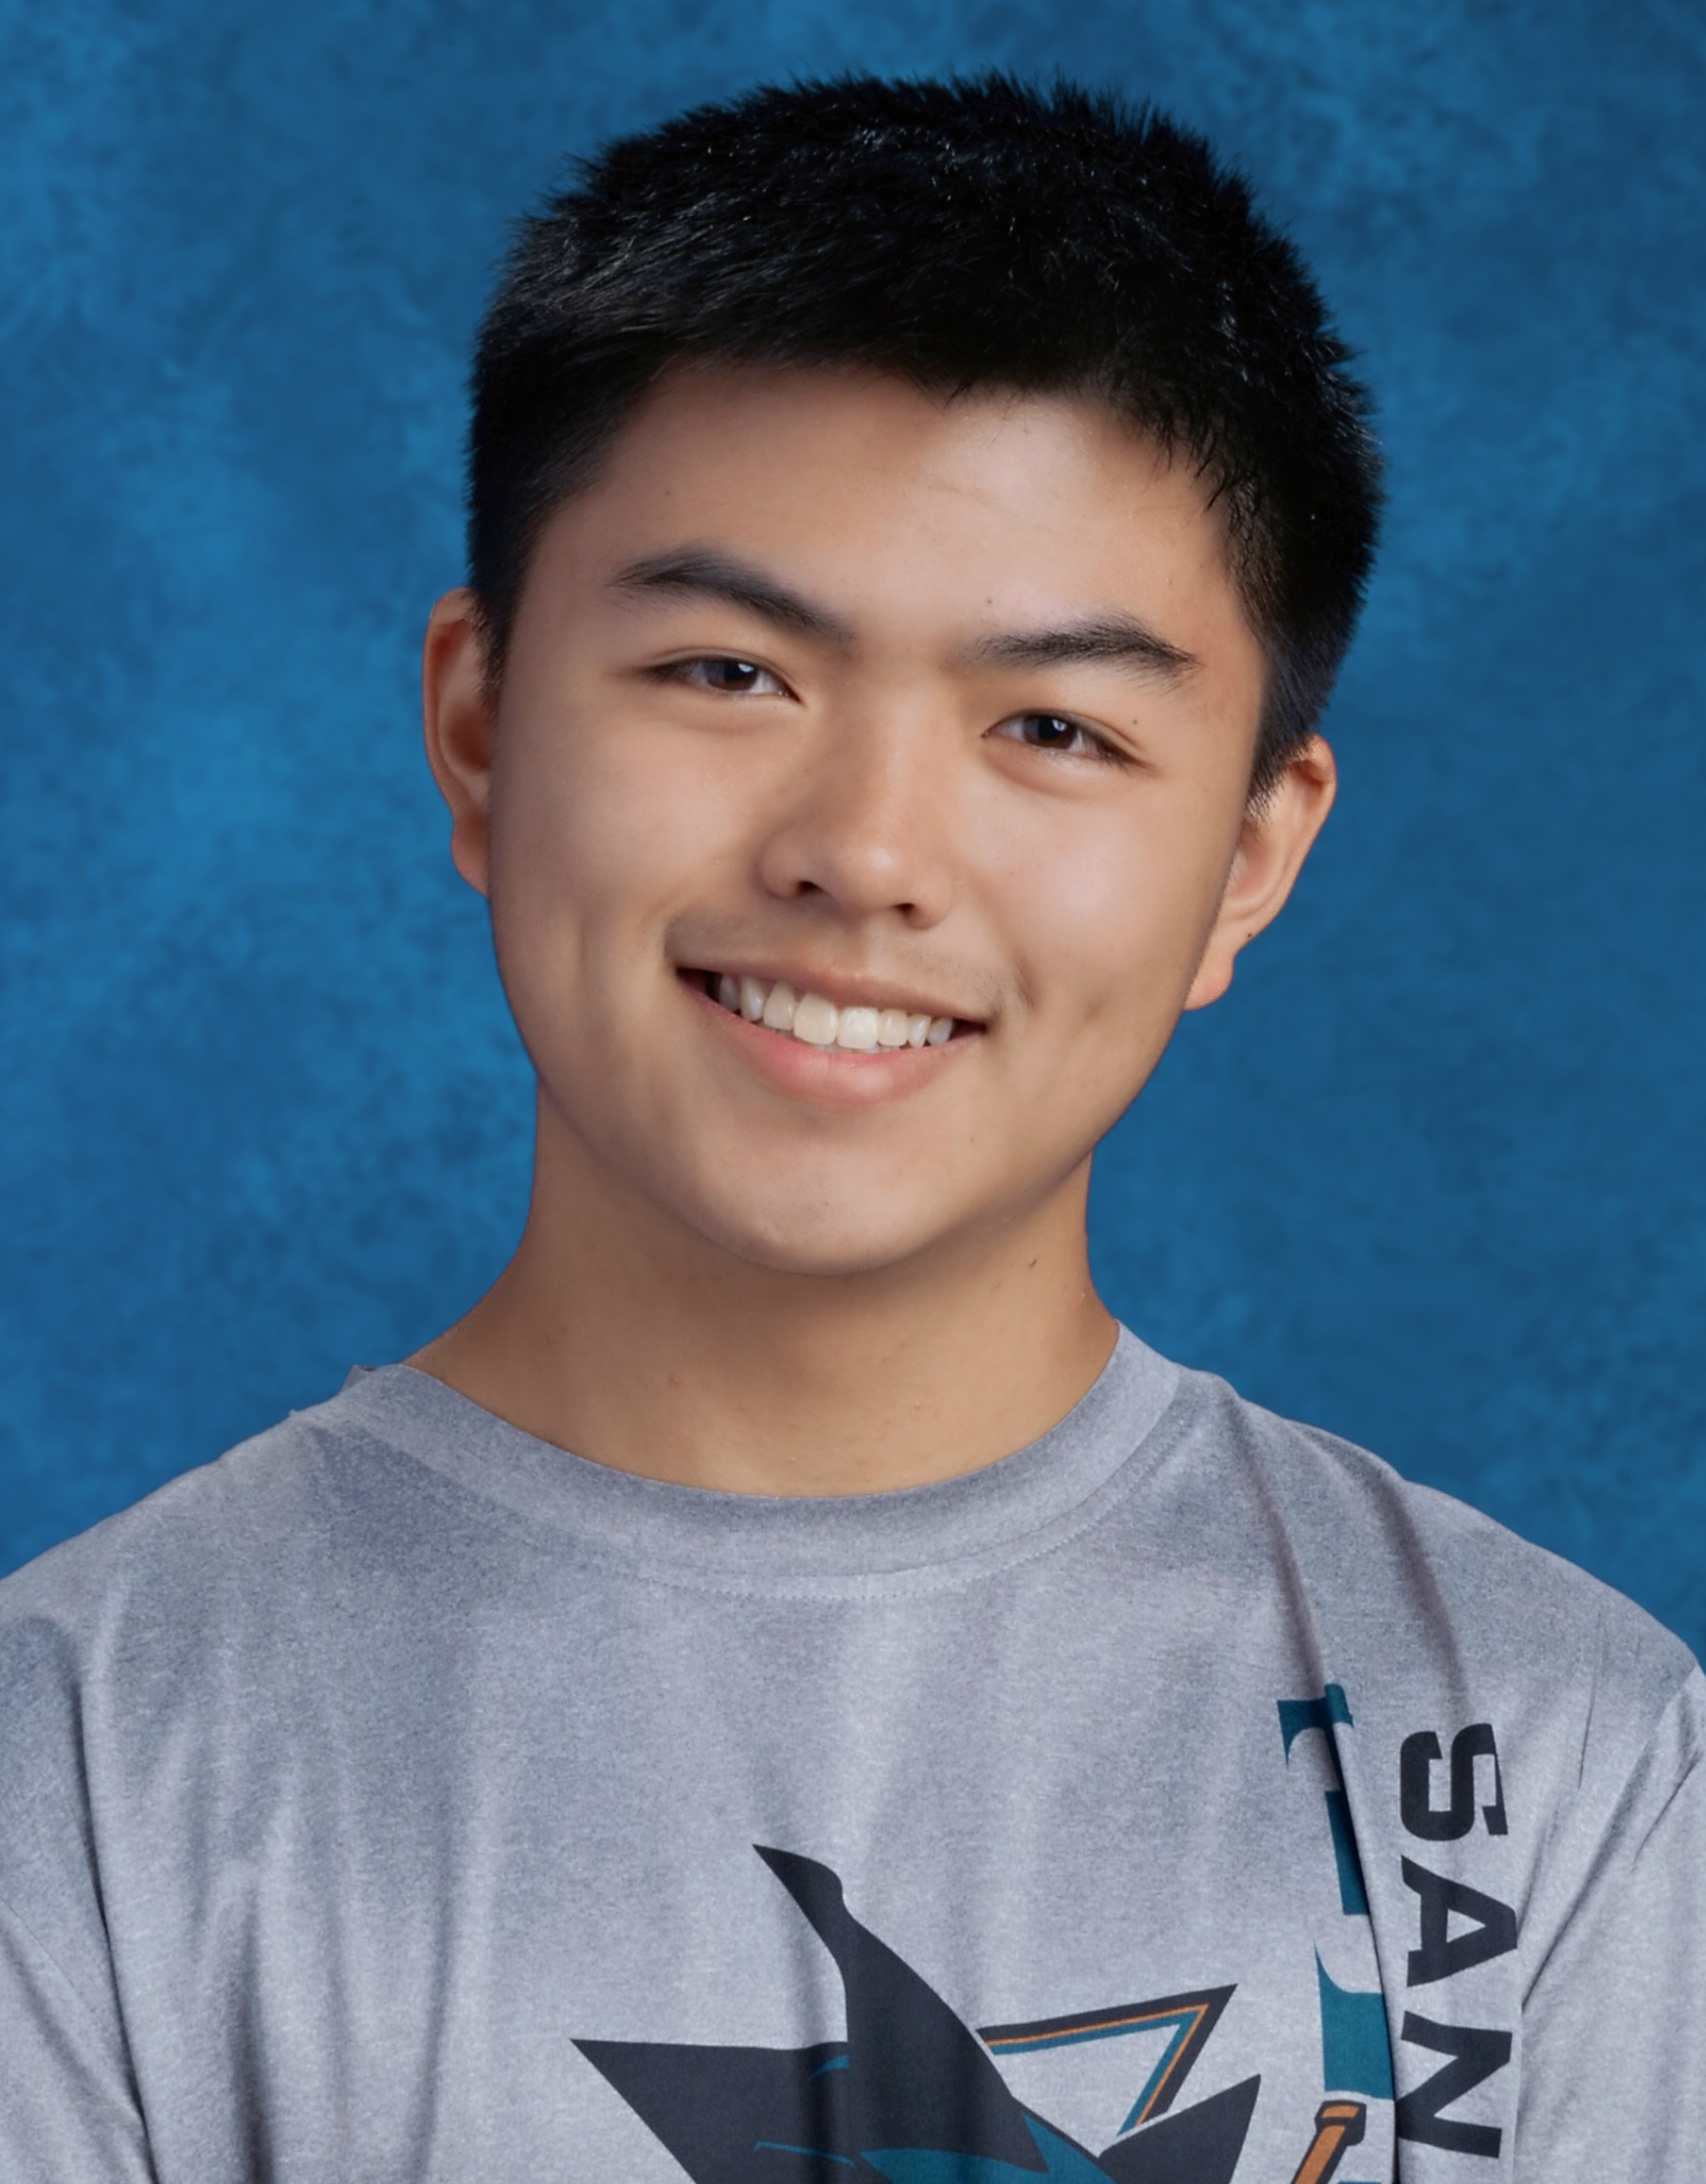 Kevin Gao - Kevin Gao serves as EqOpTech adviser and is a rising freshman at UC Berkeley. He served as President of EqOpTech during 2018-19. His favorite subjects are statistics and computer science.Kevin also has a passion for chess and piano, and is a member of GYP, a nonprofit piano organization that fund raises money for third world countries, as well as being the VP of his school's chess club. In his free time, he enjoys coding, building robots, and watching hockey.